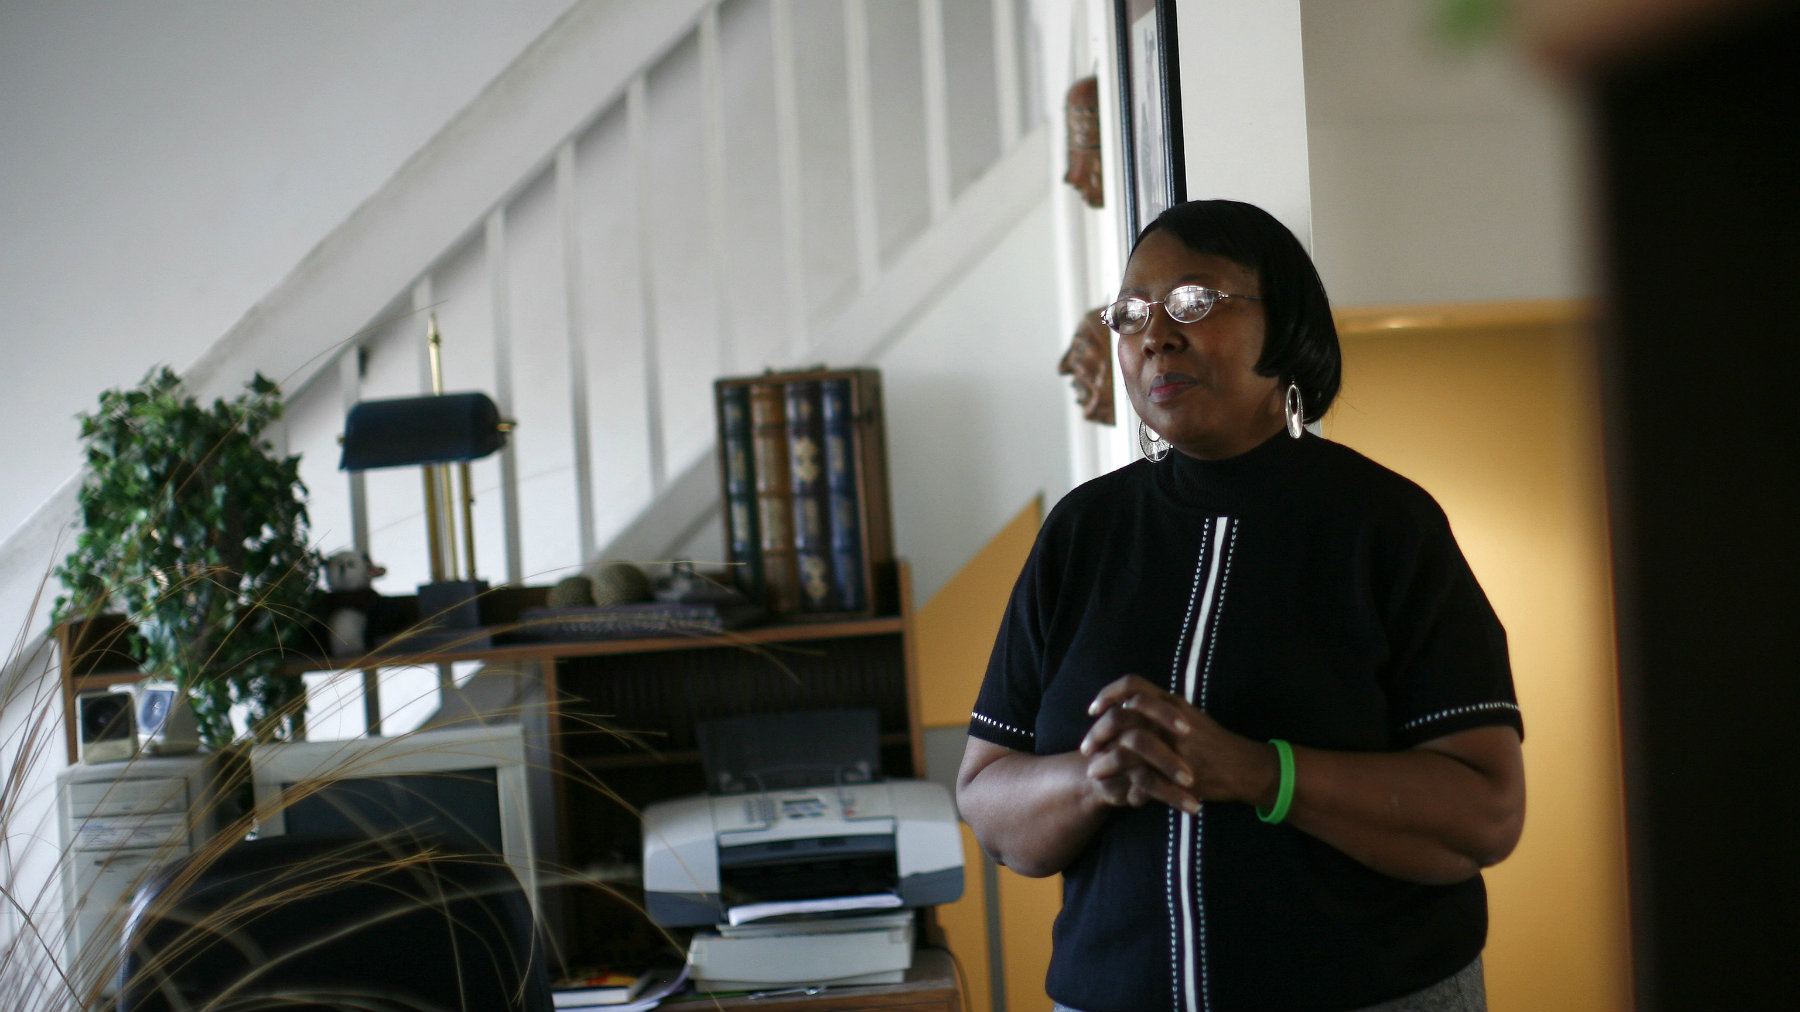 Lorene Parker pictured as she stood in her house, which fell into foreclosure, in Detroit, Michigan, in 2008.